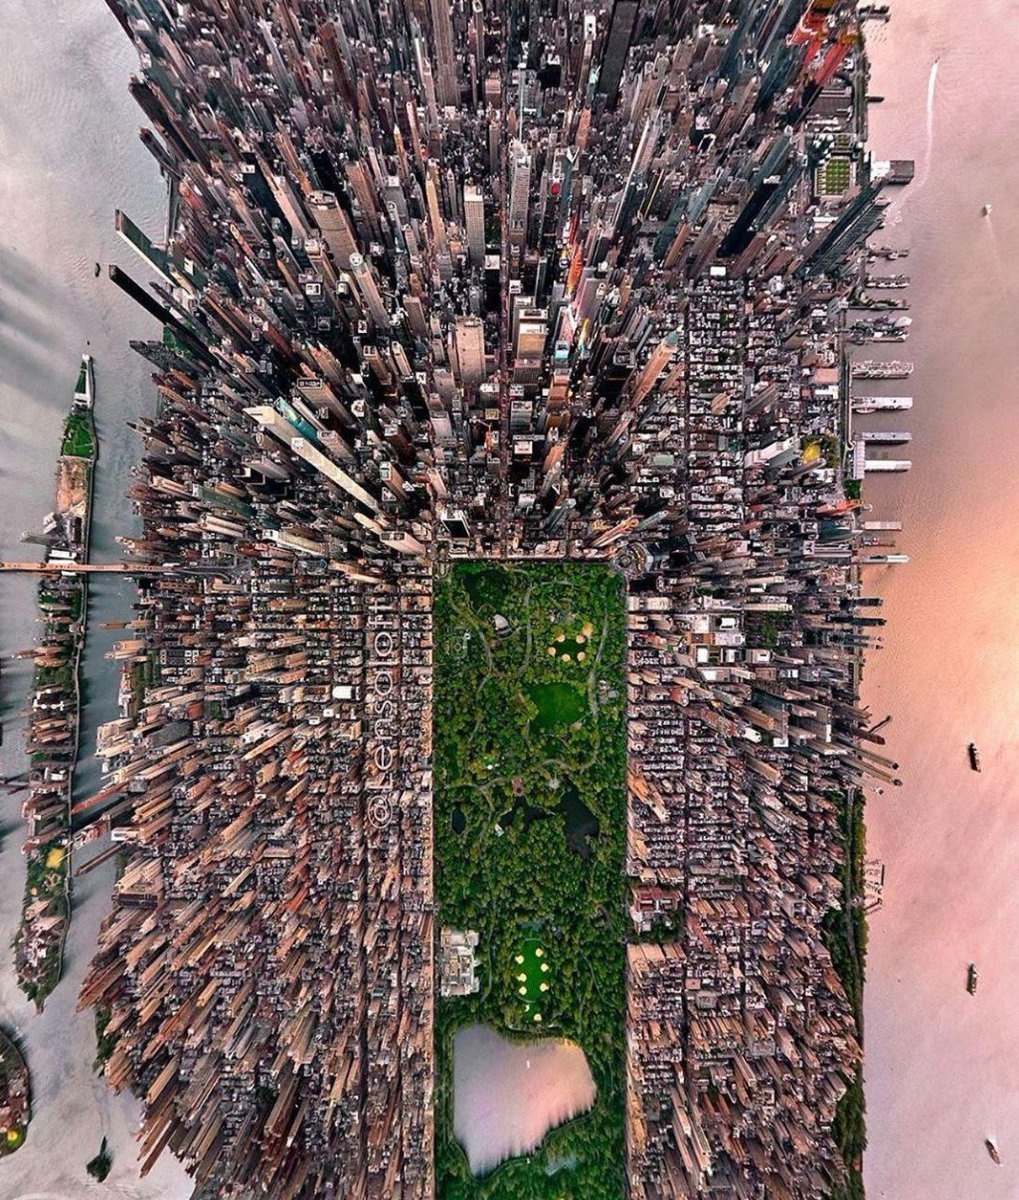 Manhattan, NY viewed from above  #NYC  Source: